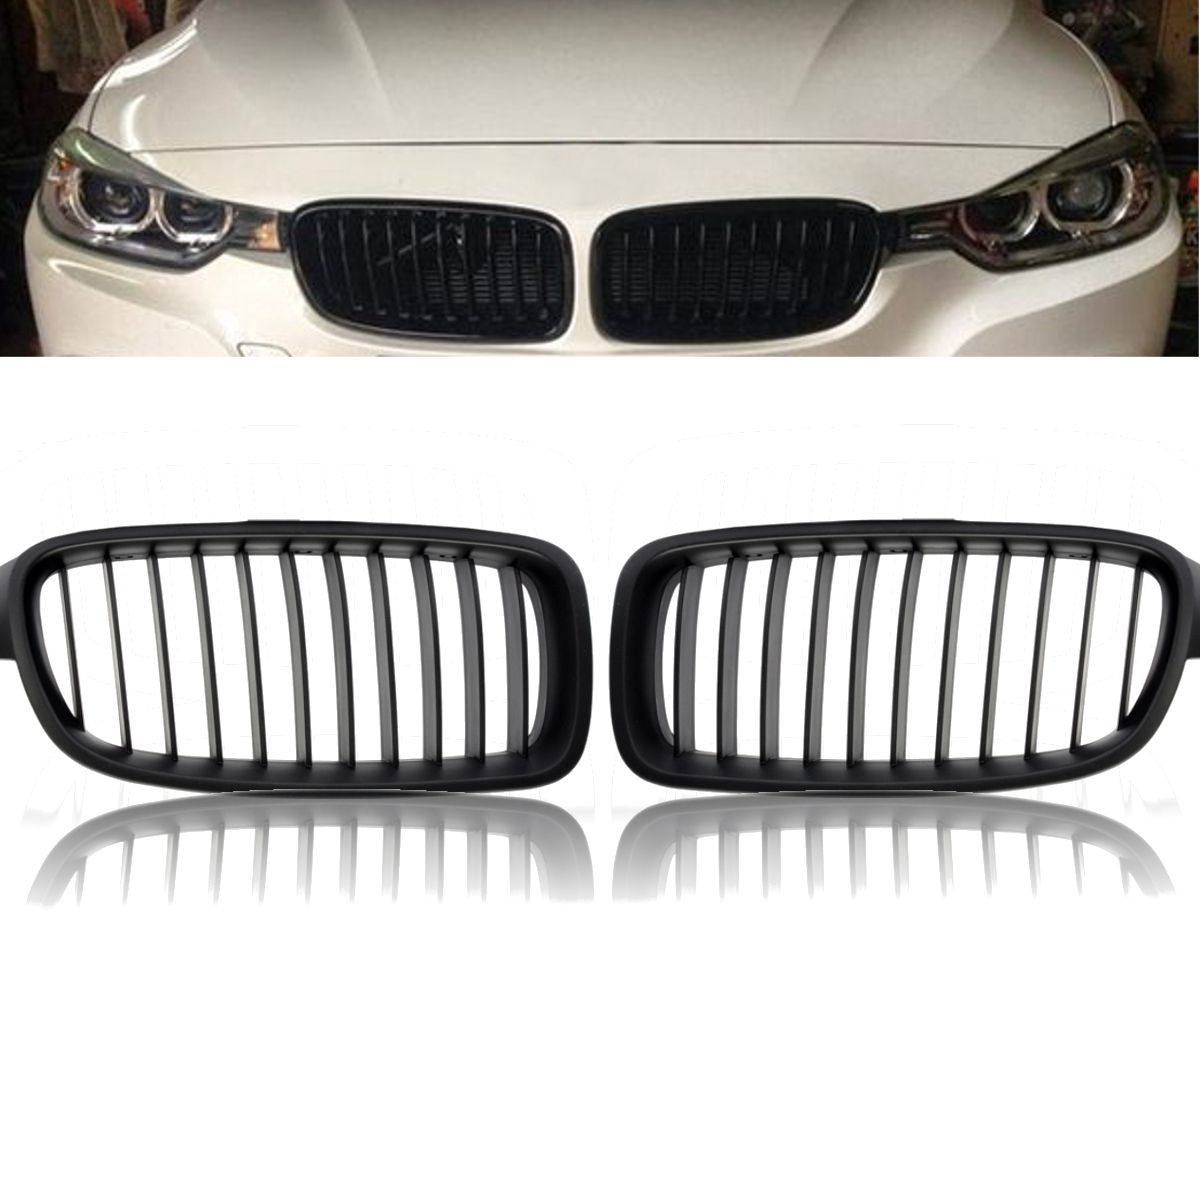 2Pcs/Pair Matte Black Car Front Kidney Grilles Grills For BMW F30 F31 F35 3Seires 320i 328i 2012 2013 2014 2015 2016 2017 1 pair gloss black front kidney grilles grill car styling racing grills replacement grilles for bmw f30 f31 f35 320i 2012